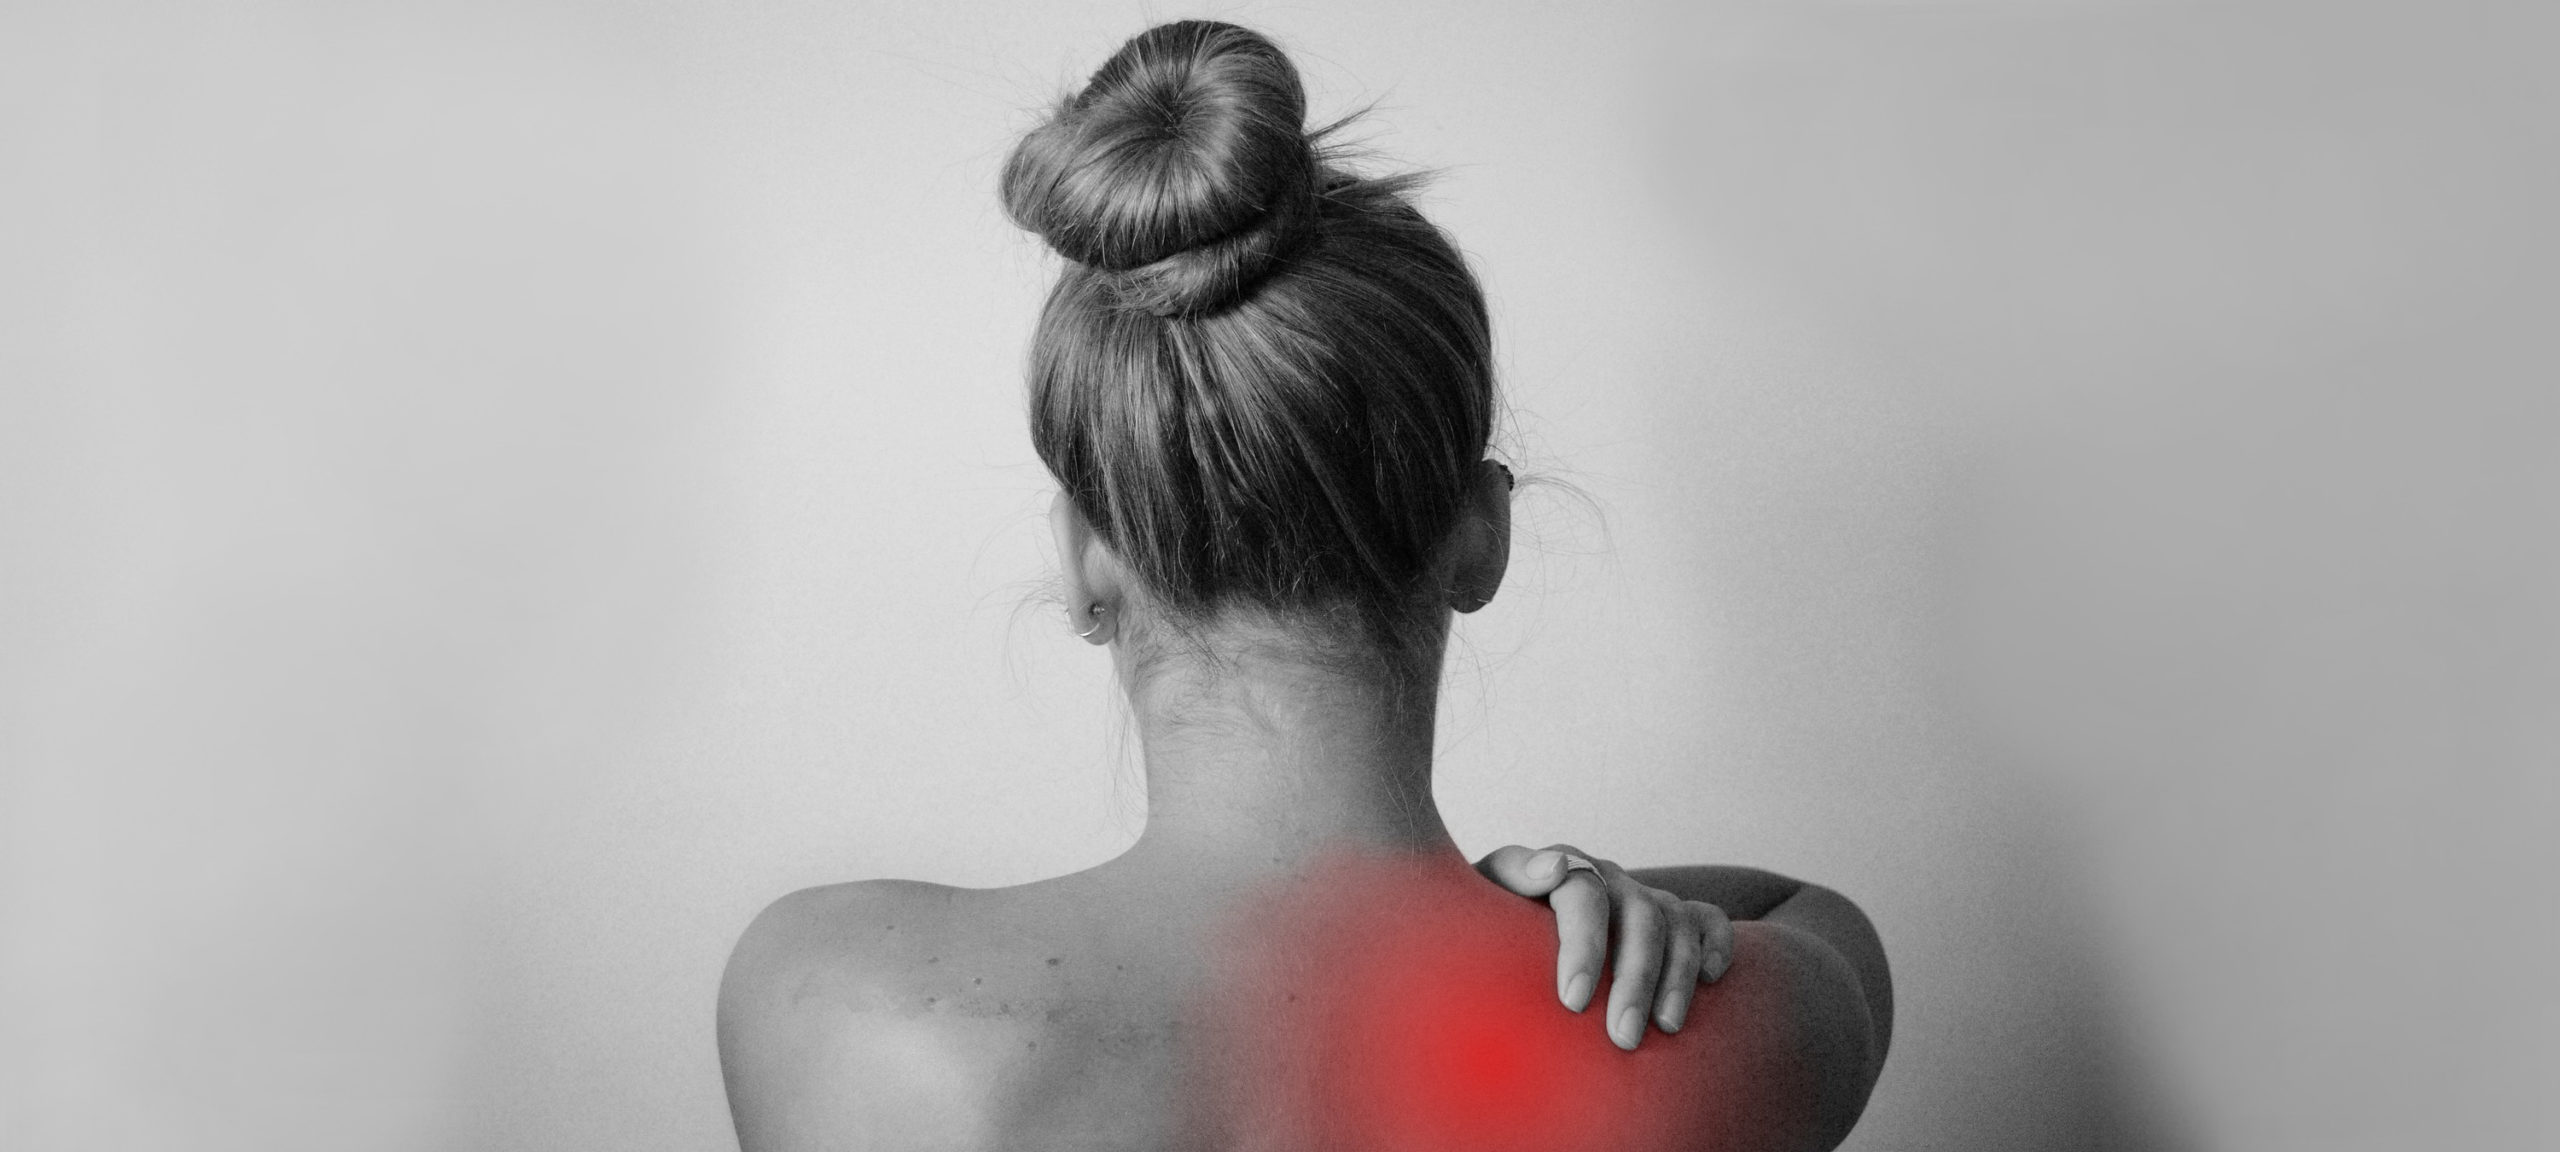 Aches and Pains - shoulder